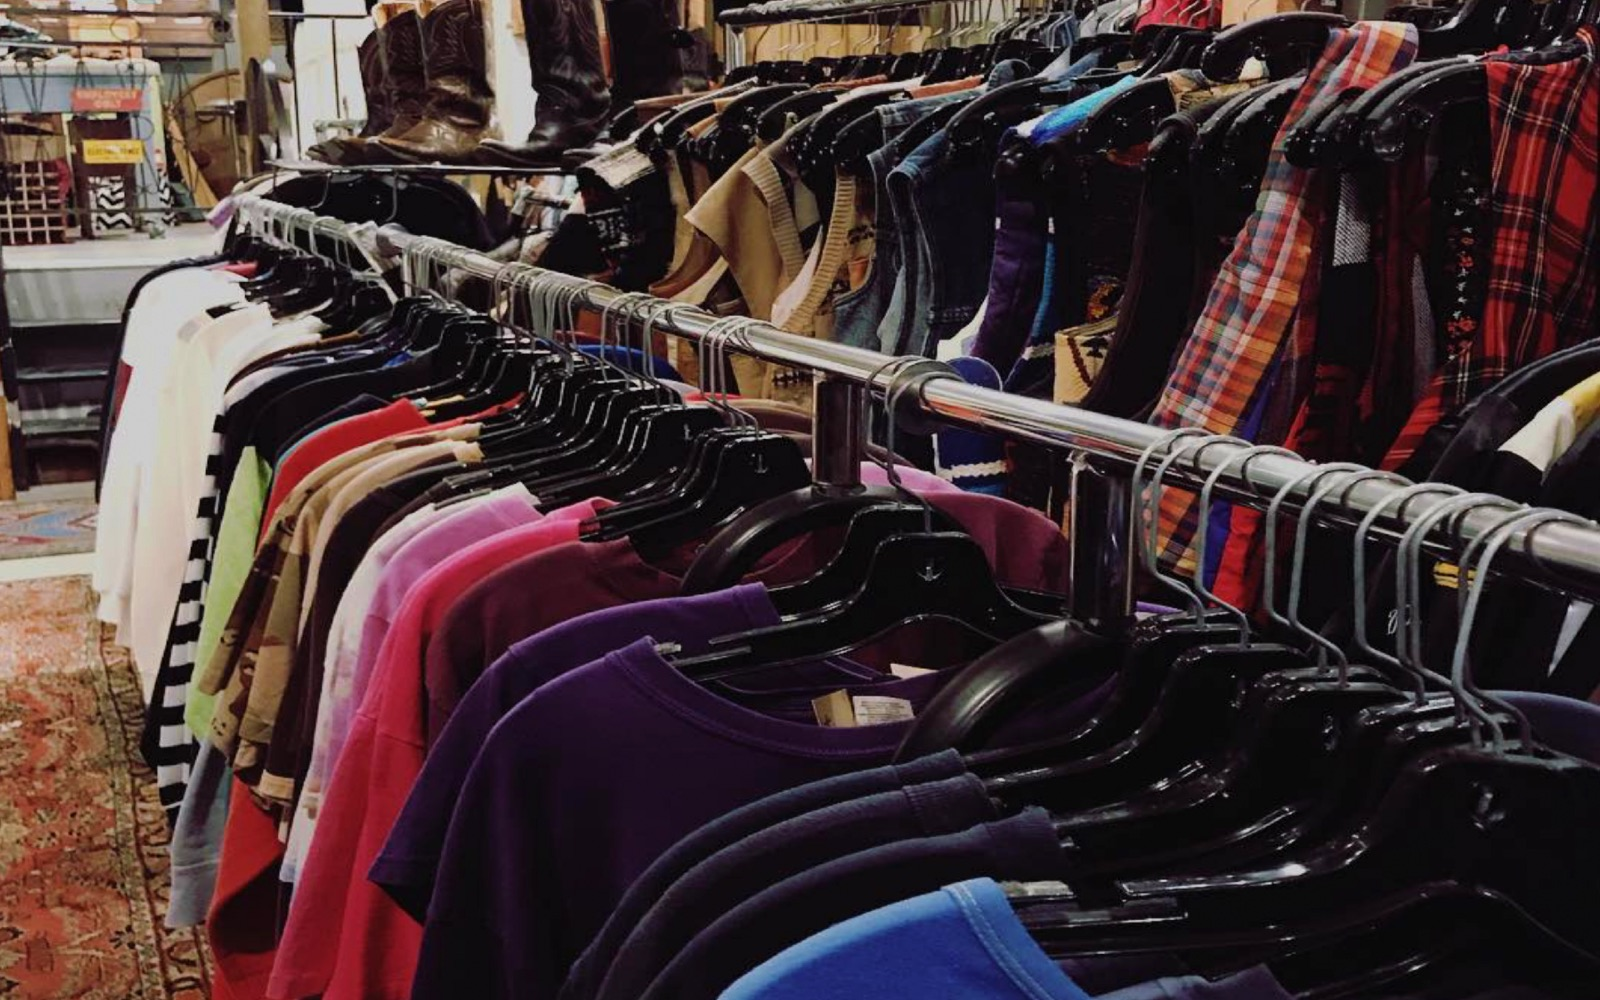 Racks of vintage clothing at Mintage, Commercial Drive